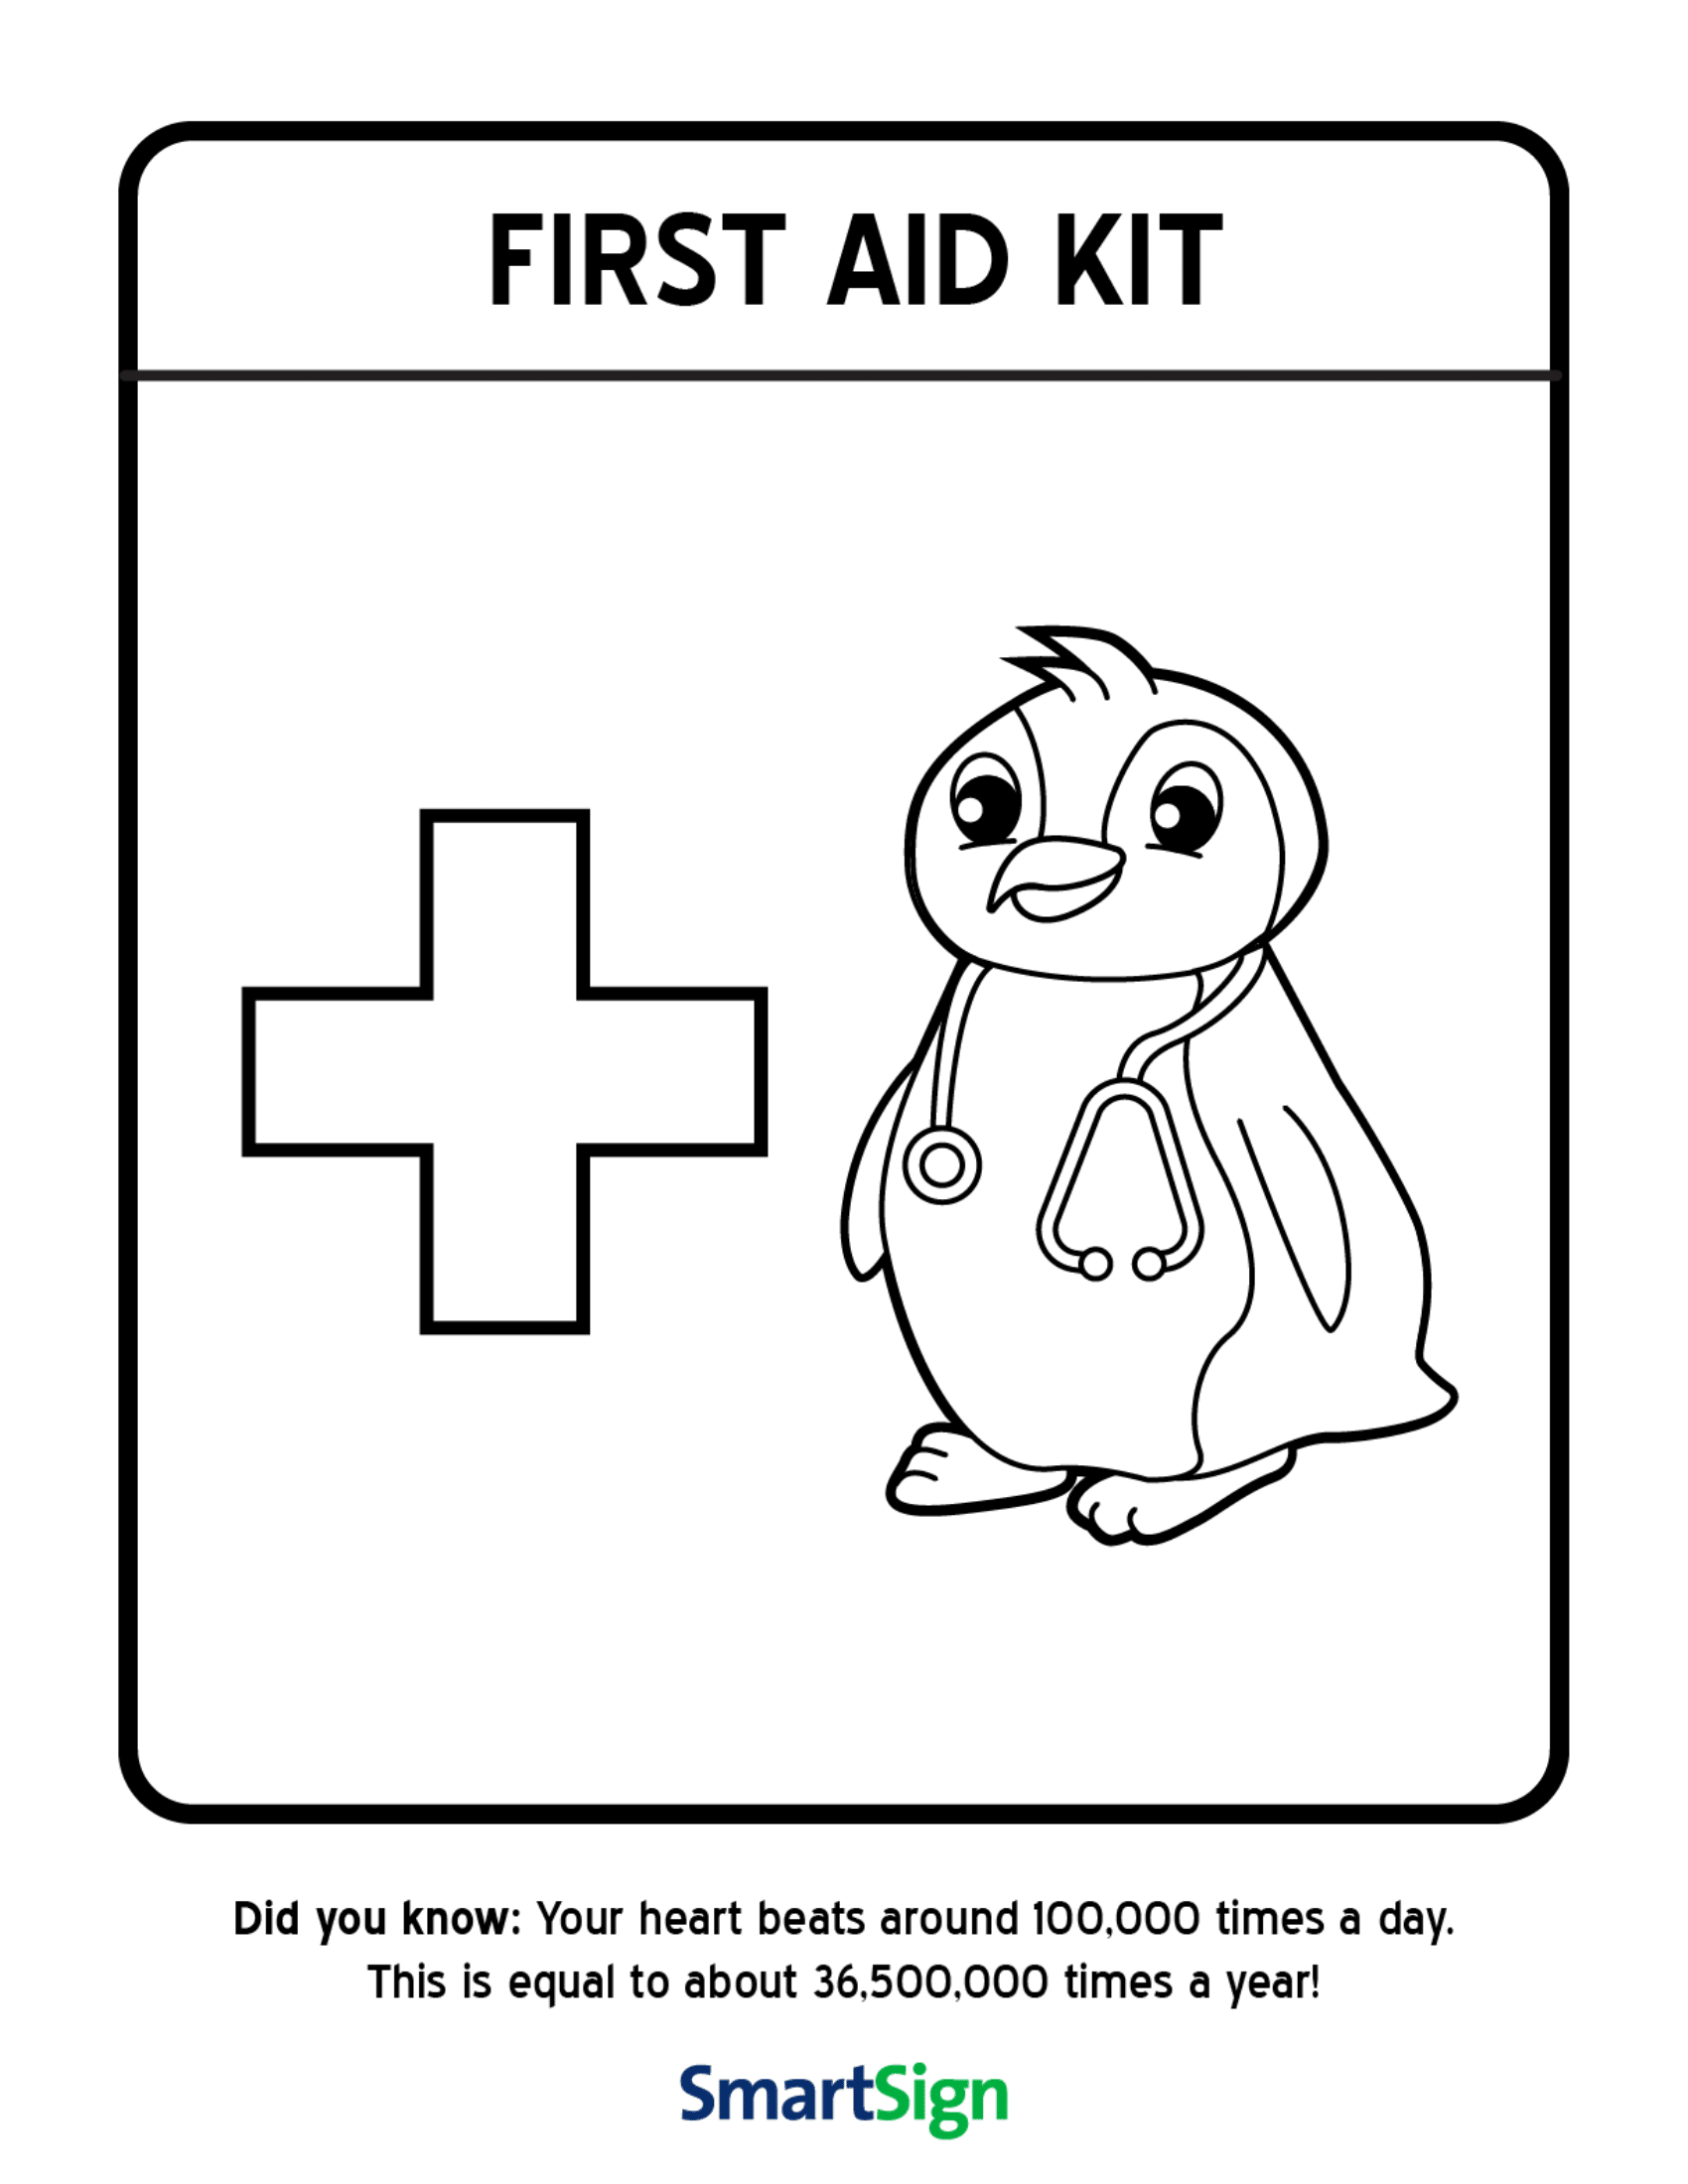 Safety Coloring Printable for Kids - First Aid Kit. | Pics4Learning